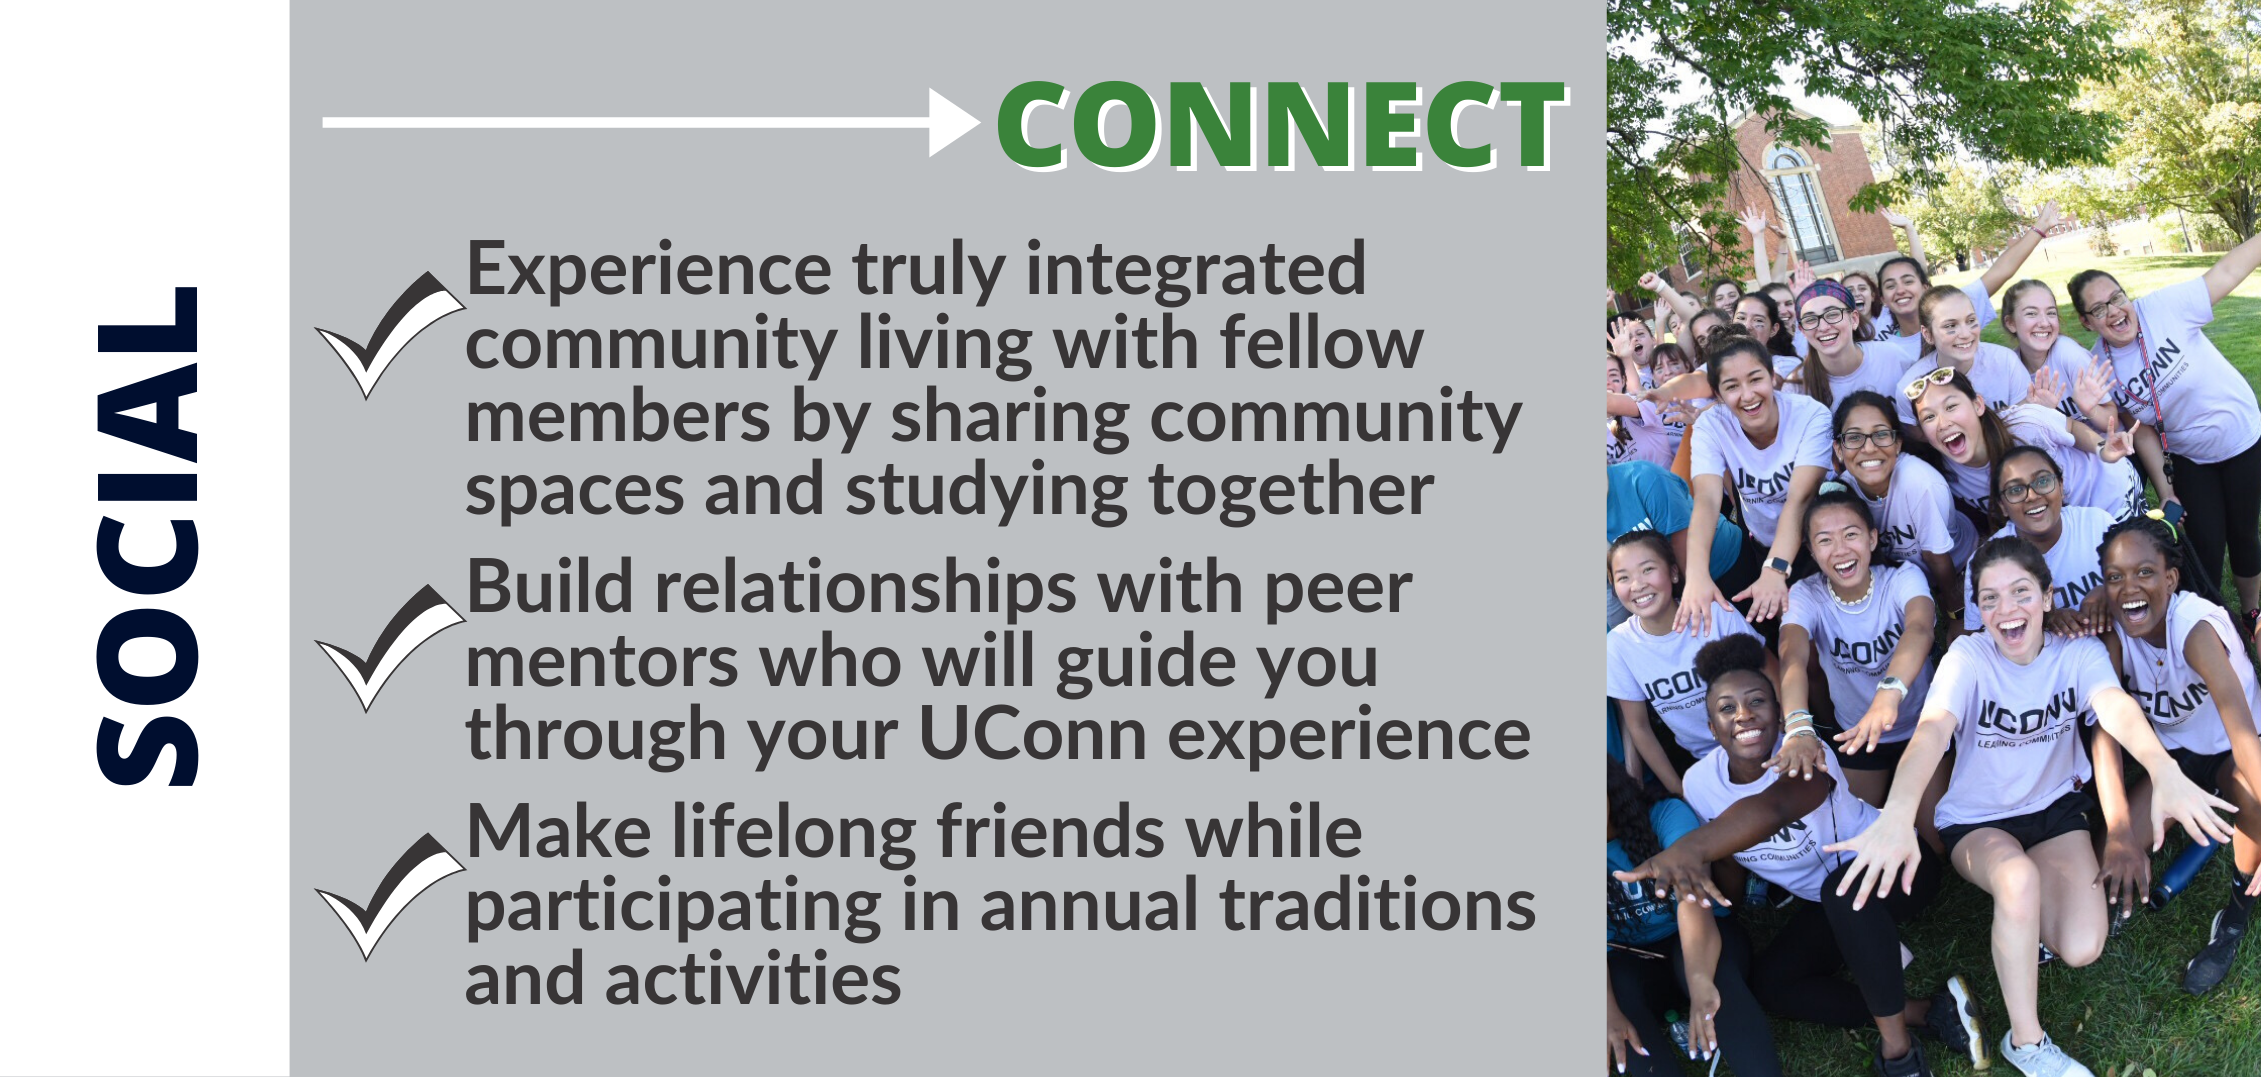 CONNECT: Experience truly integrated community living with fellow members by sharing community spaces and studying together Build relationships with peer mentors who will guide you through your UConn experience Make lifelong friends while participating in annual traditions and activities